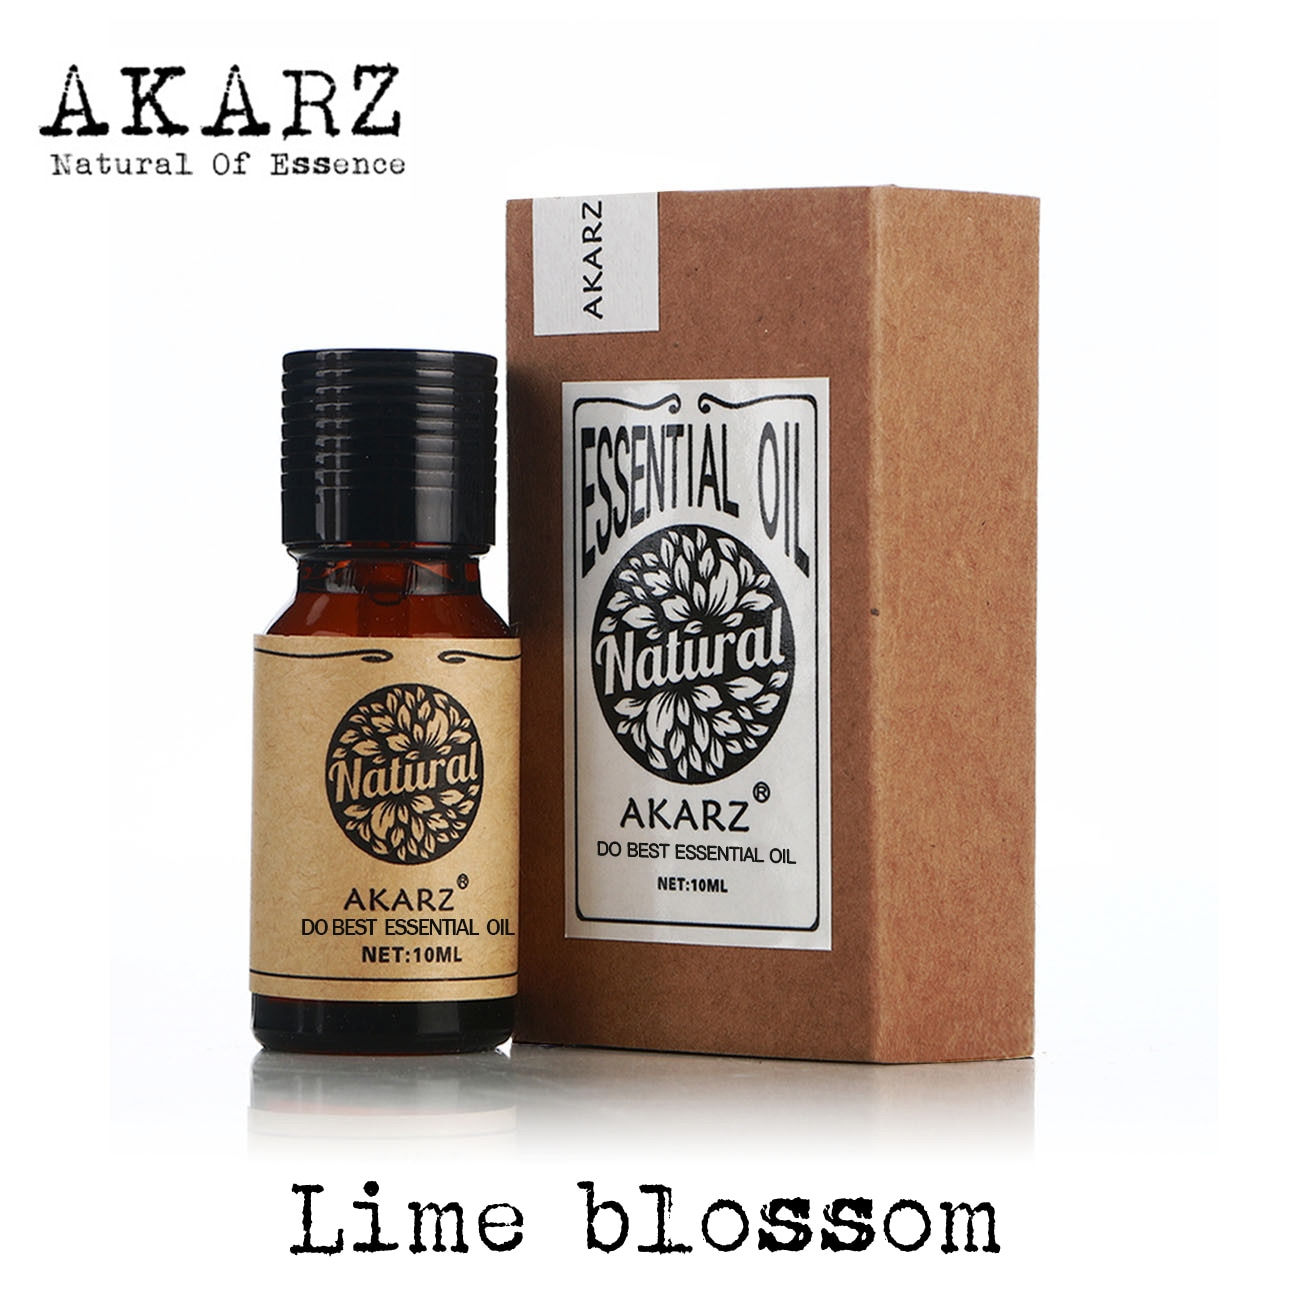 AKARZ Famous brand natural Lime blossom essential oil skin is more compact liver conditioning Lime blossom oil